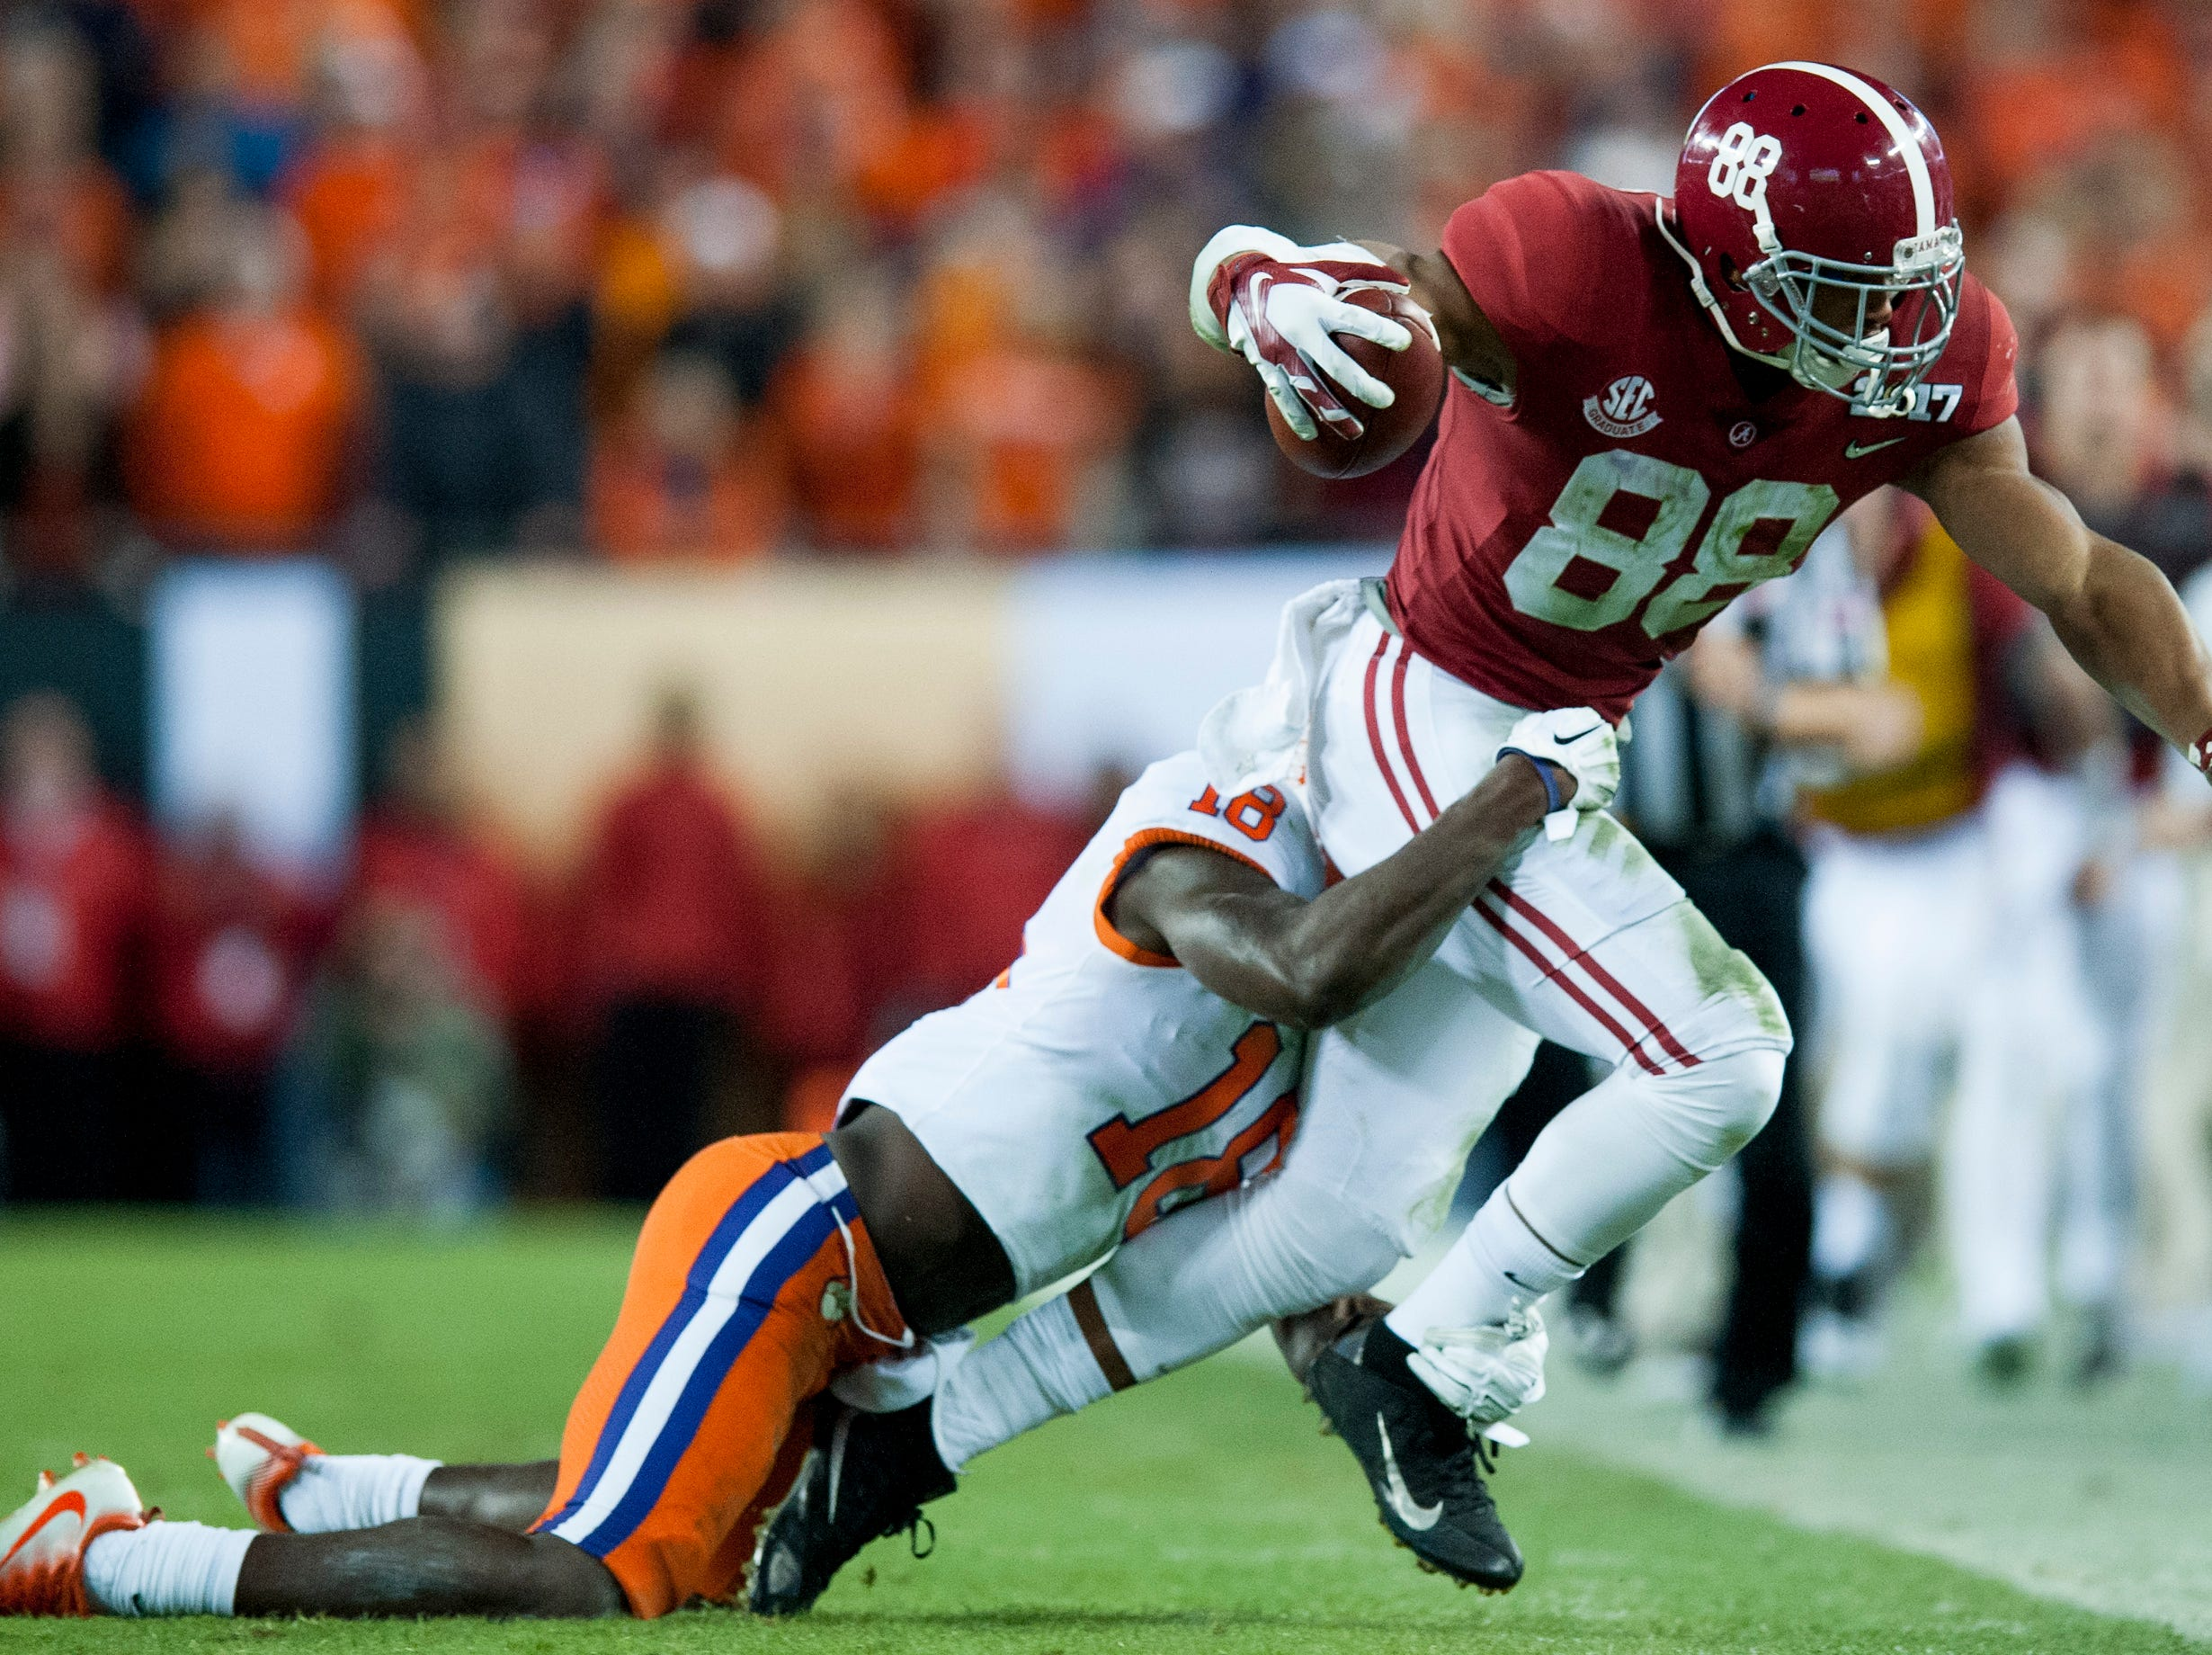 Alabama tight end O.J. Howard (88) is stopped by Clemson safety Jadar Johnson (18) after catching a pass from a receiver in second half action of the College Football Playoff National Championship Game at Raymond James Stadium in Tampa, Fla. on Monday January 9, 2017.